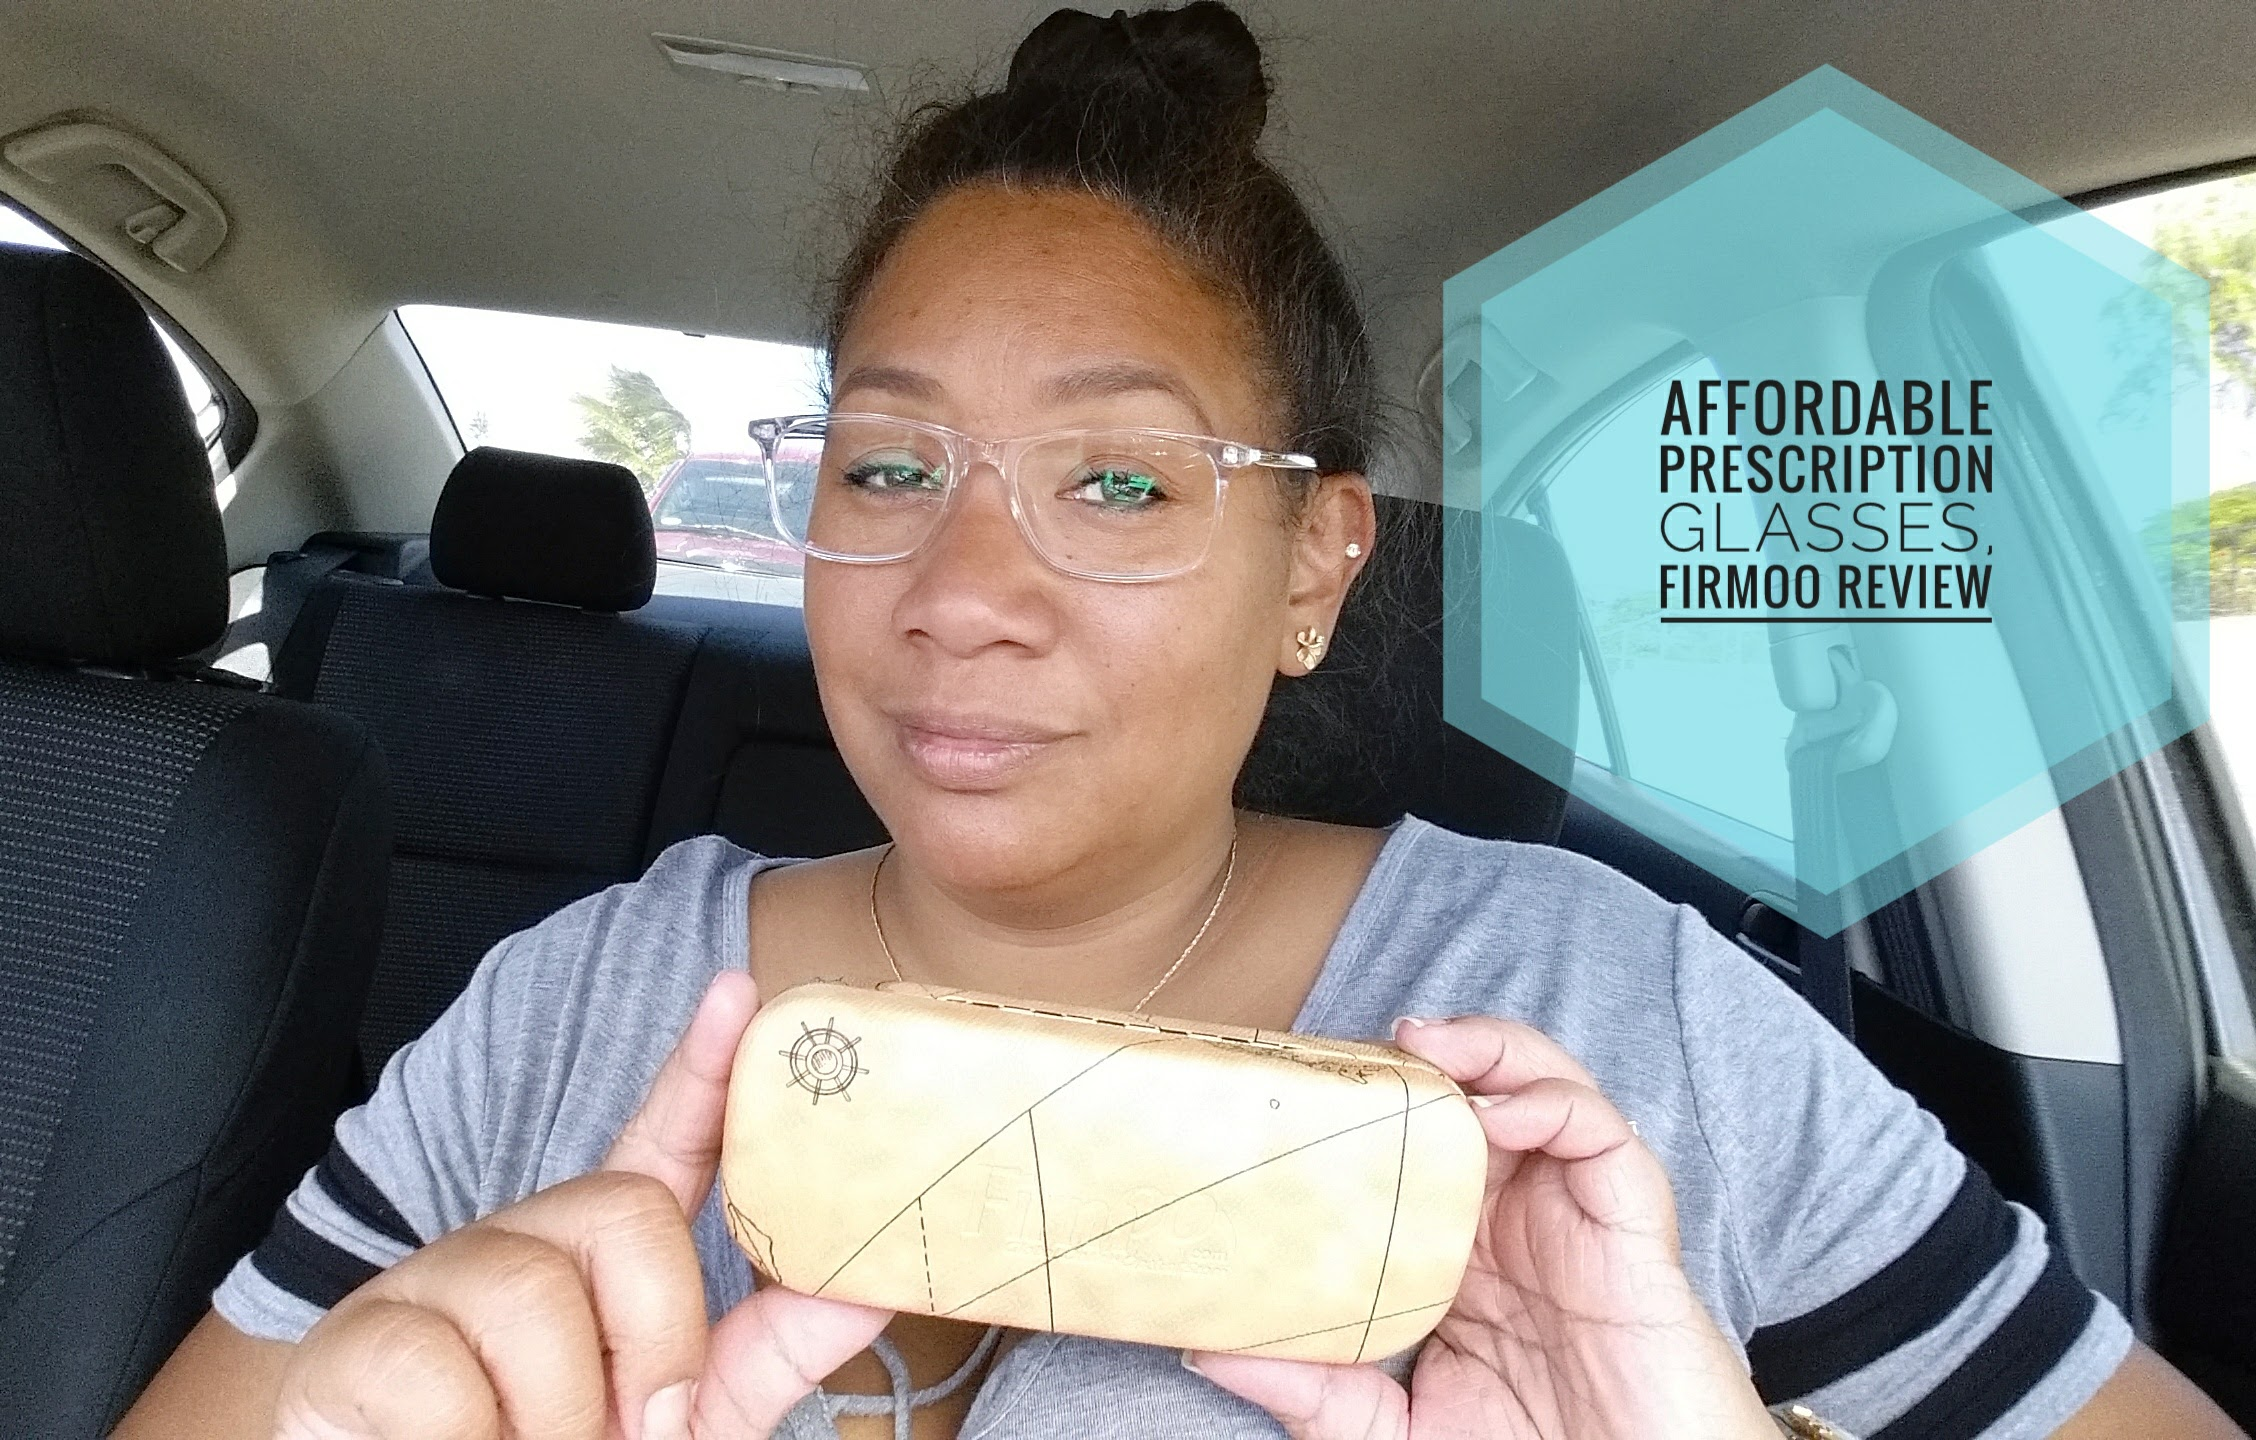 d936add6b21 Firmoo Glasses Review - Affordable Glasses with BOGO Link